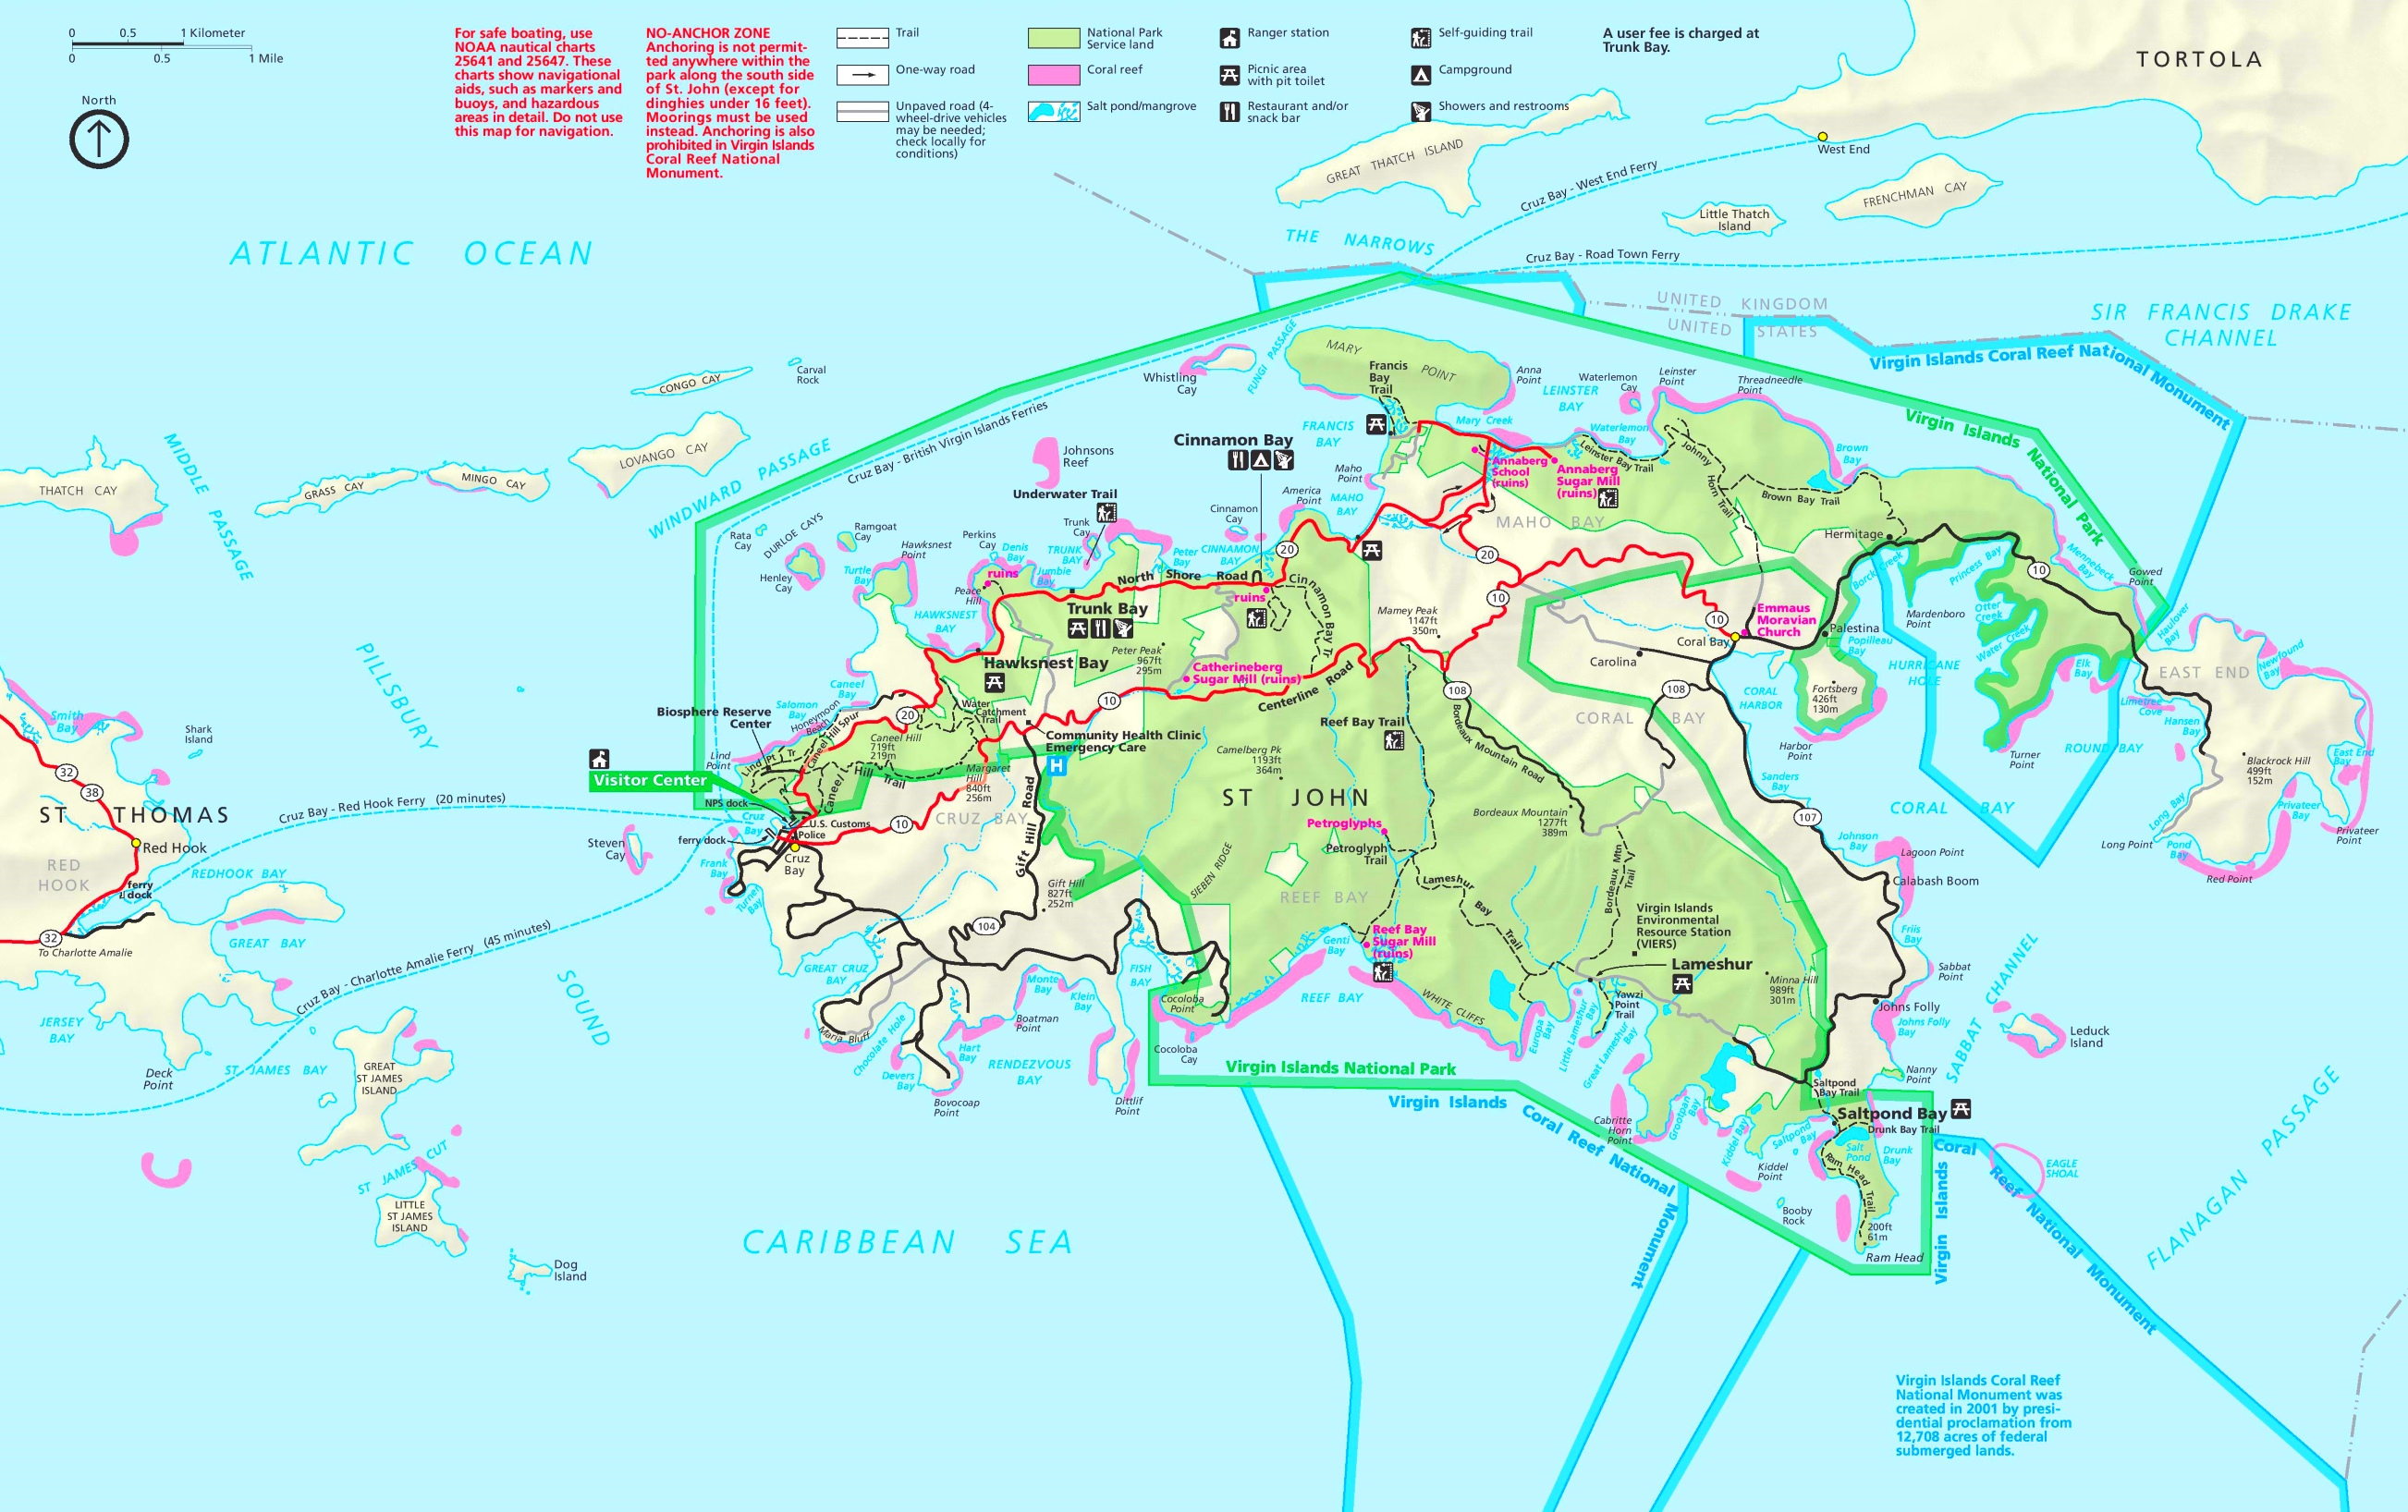 virgin islands national park tourist map. virgin islands national park maps  usa  maps of virgin islands